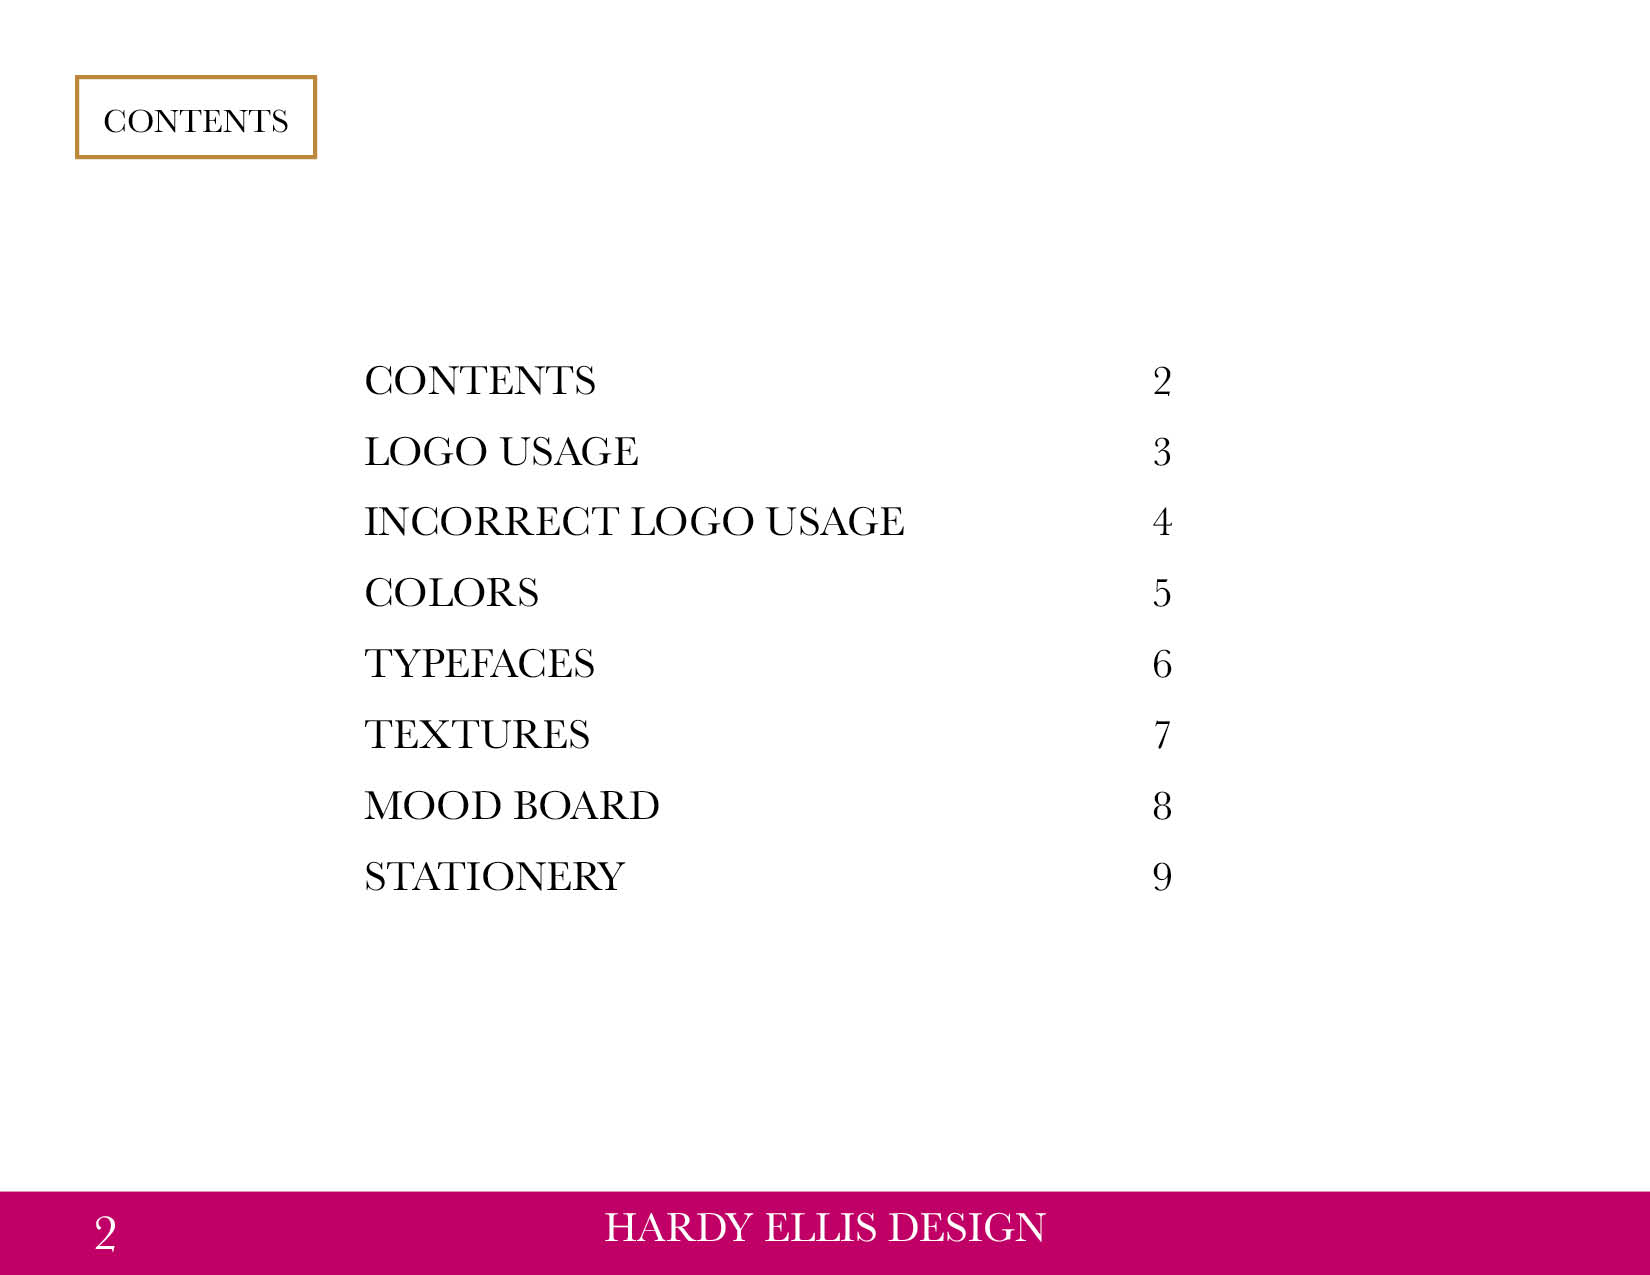 Hardy Ellis Design Style Guide2